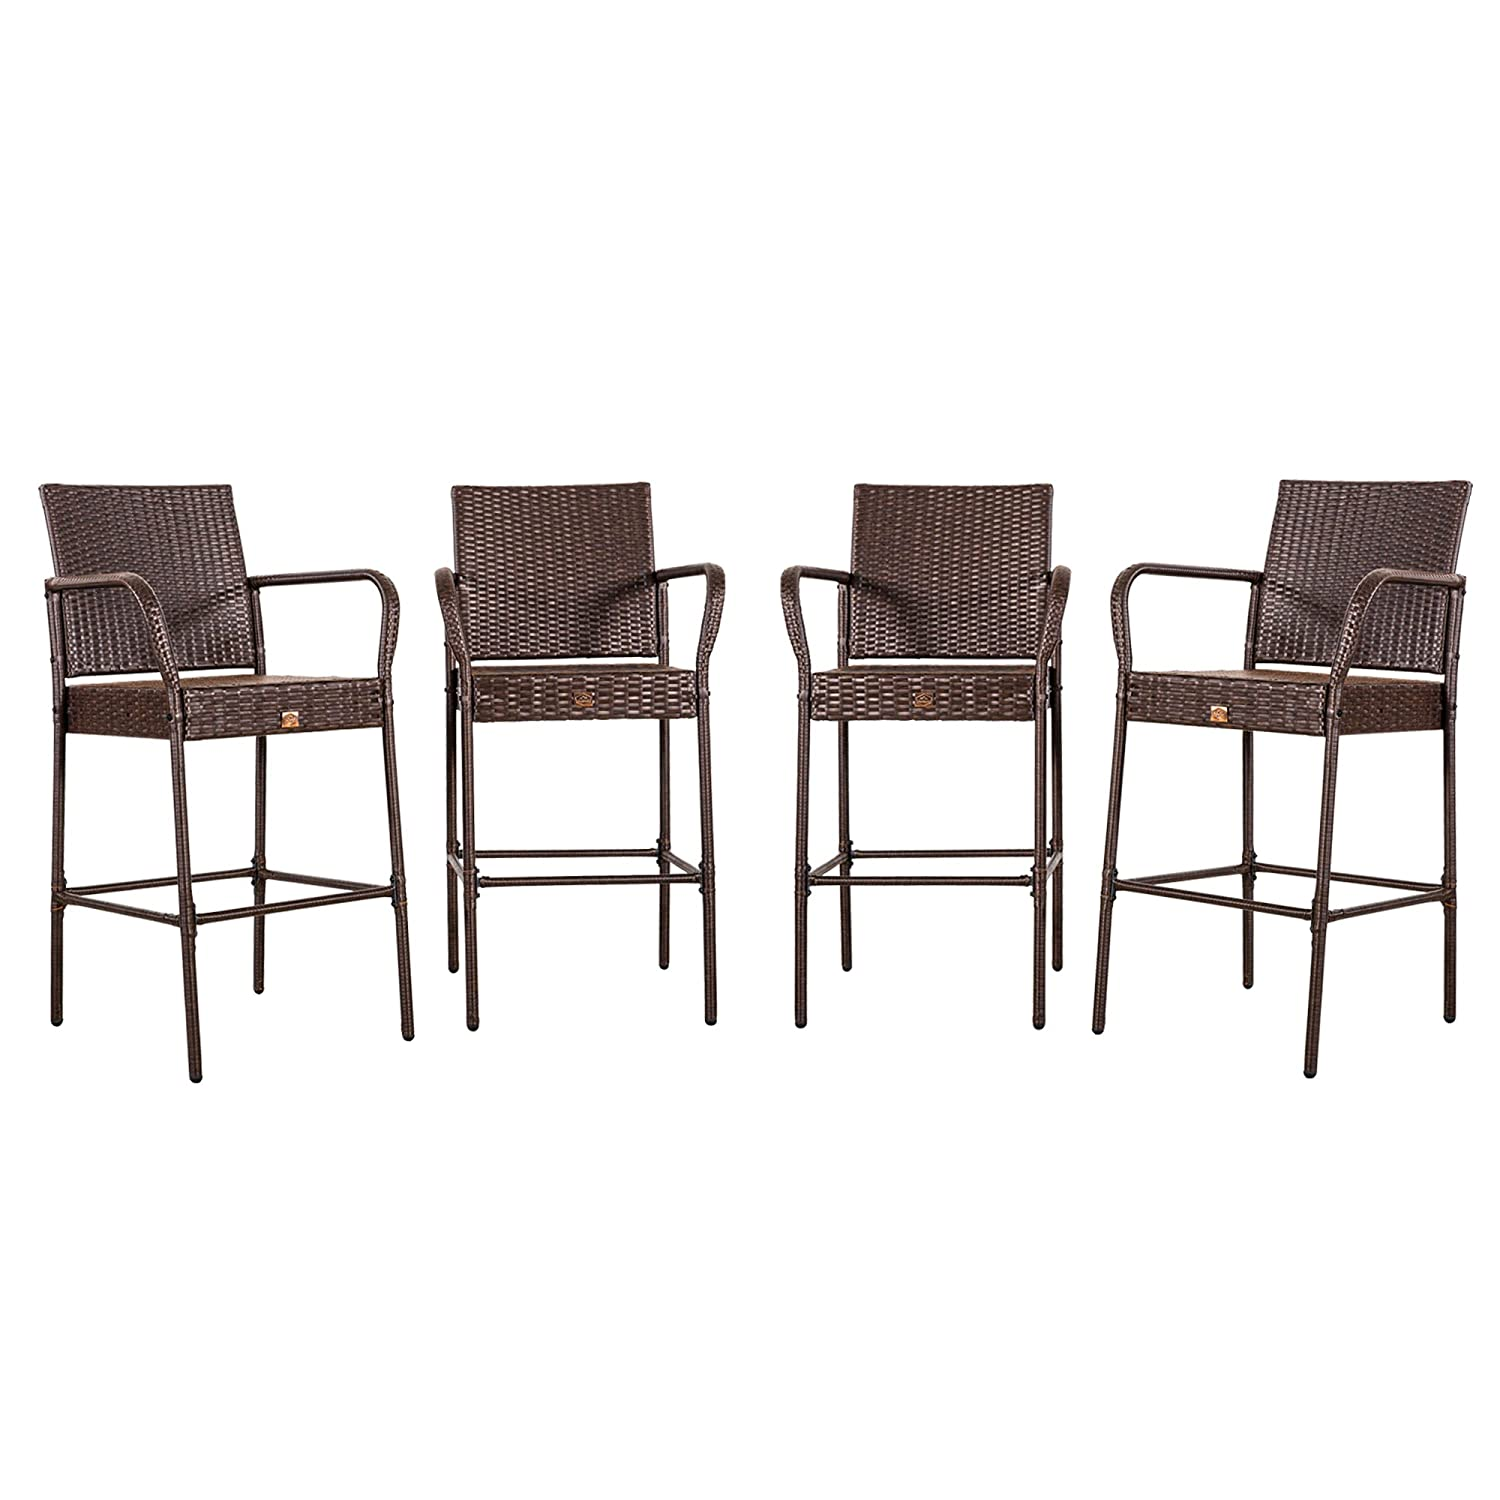 Cloud Mountain No Tax Updated Set of 4 Outdoor Wicker Rattan Bar Stool Bar Set Outdoor Patio Furniture Bar Stool Chairs Club Chair Patio Dining Chairs, Brown